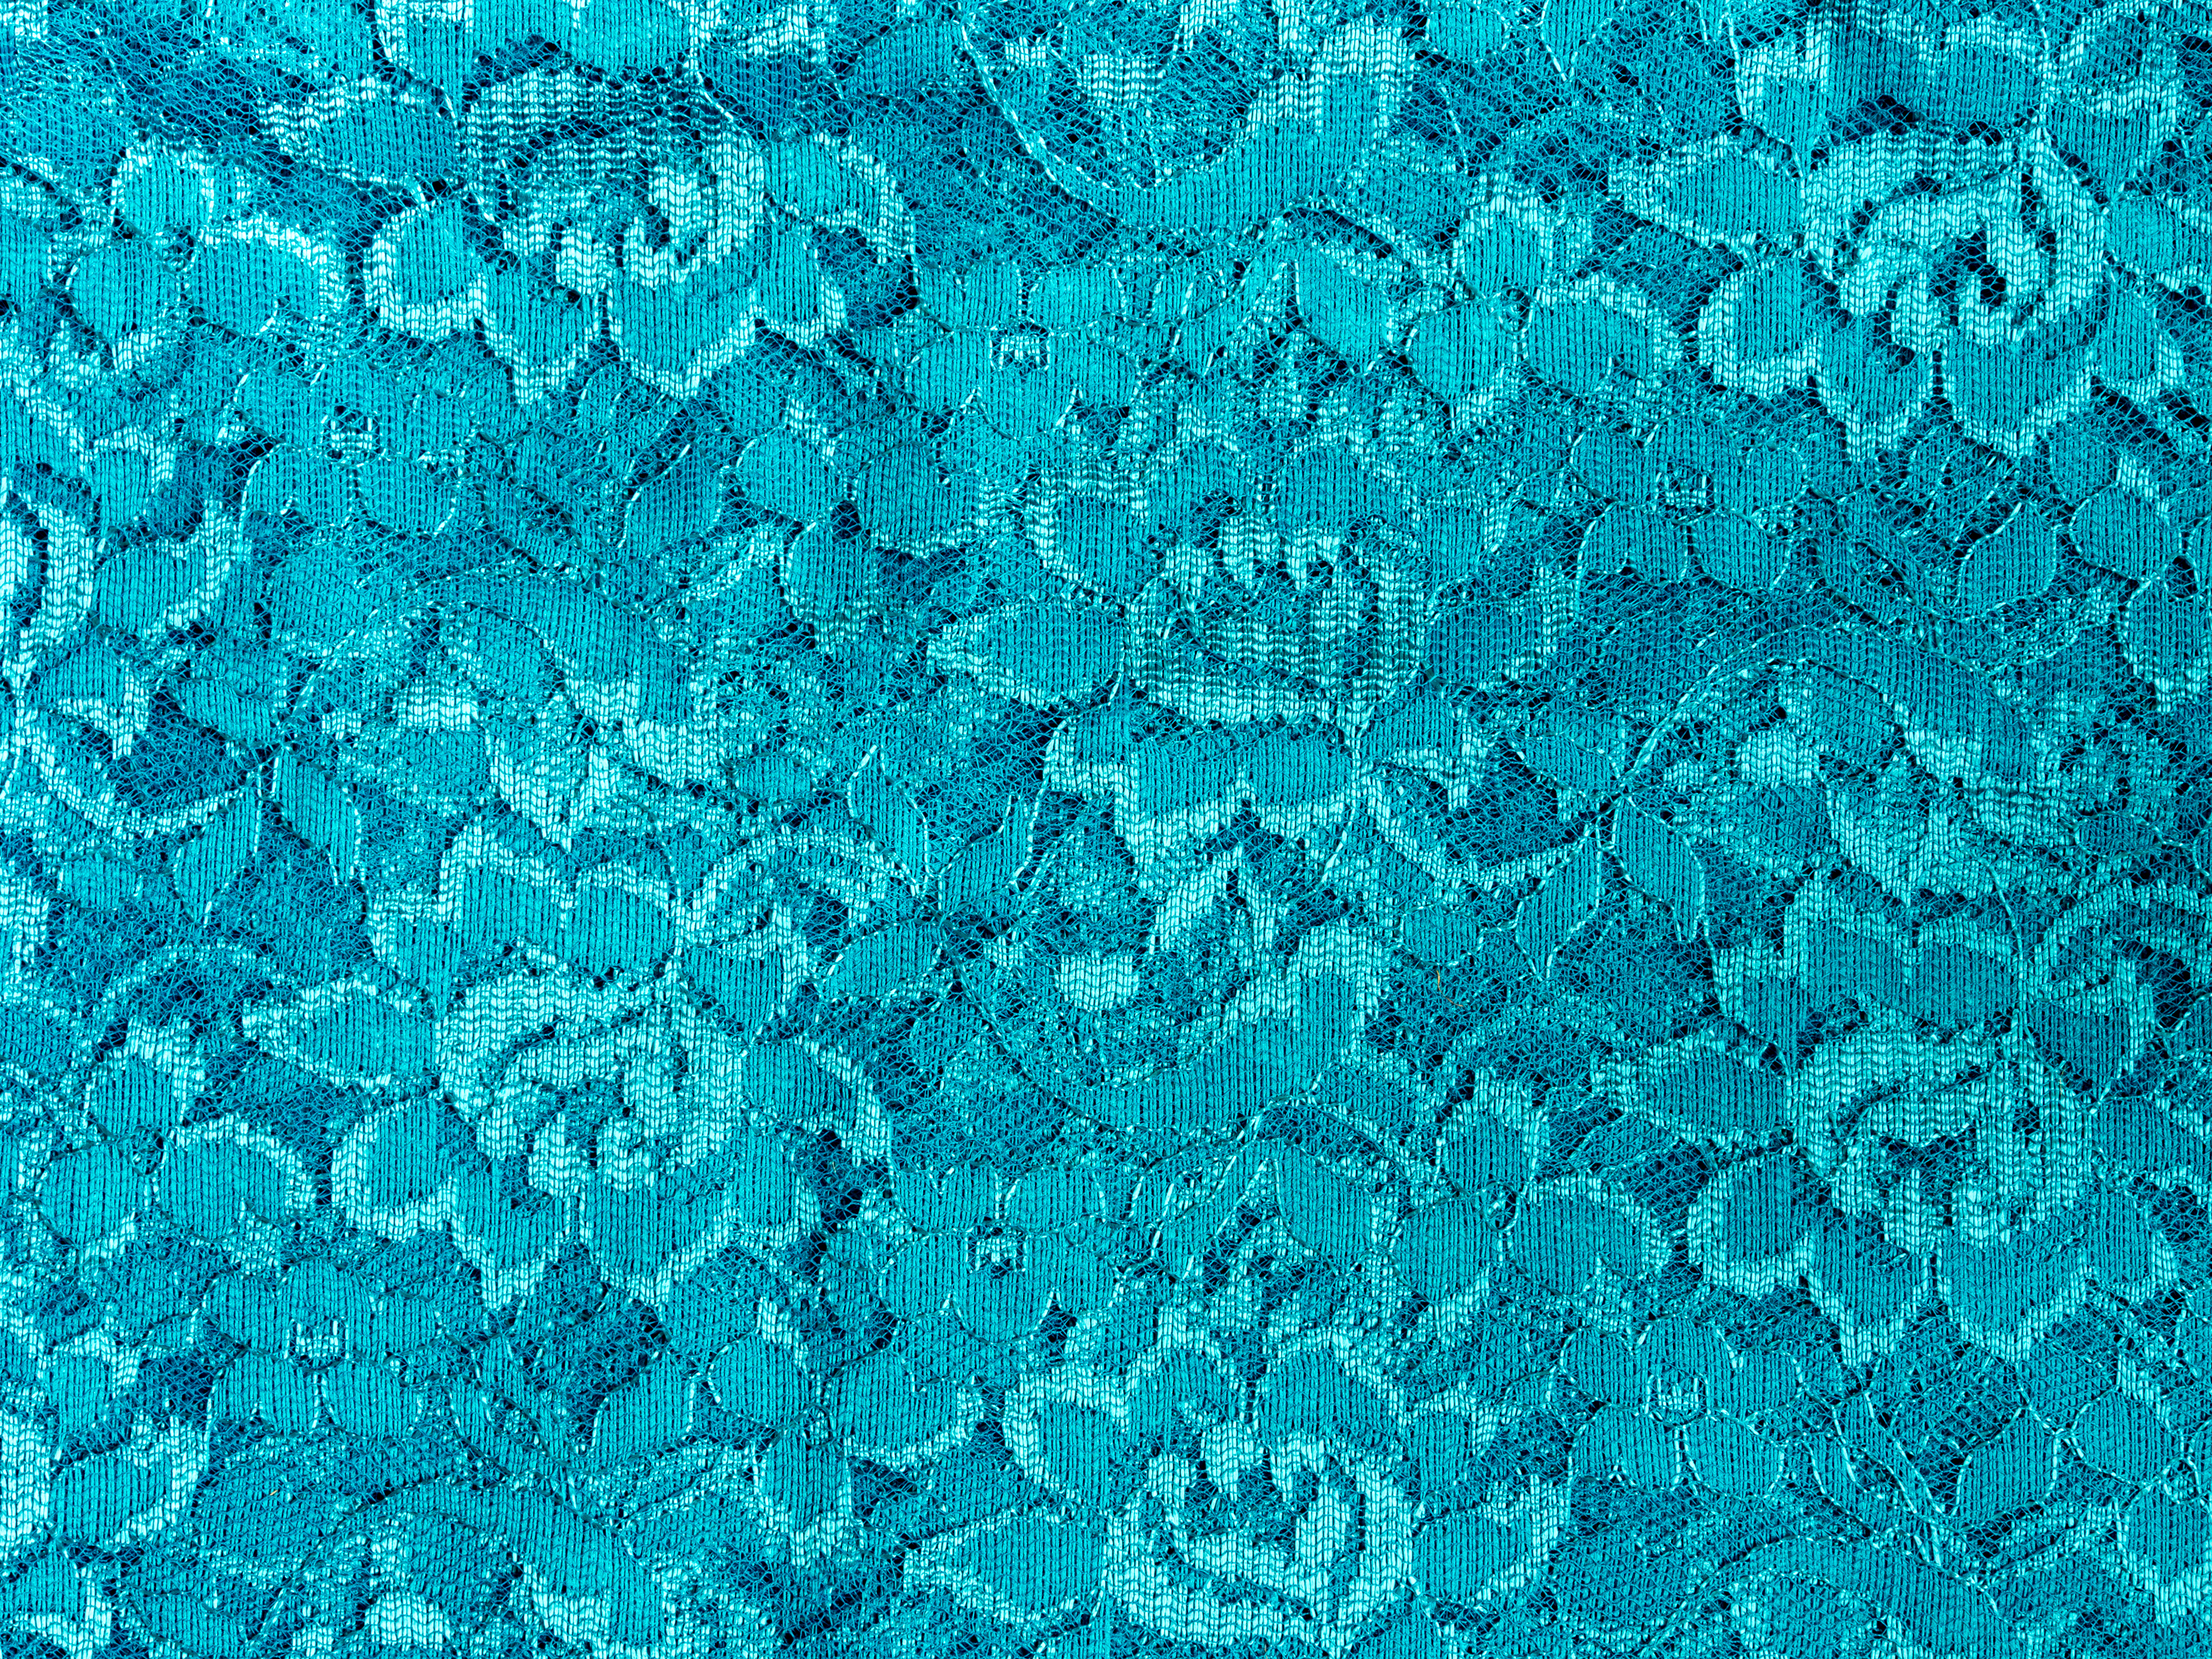 Blue lace fabric texture